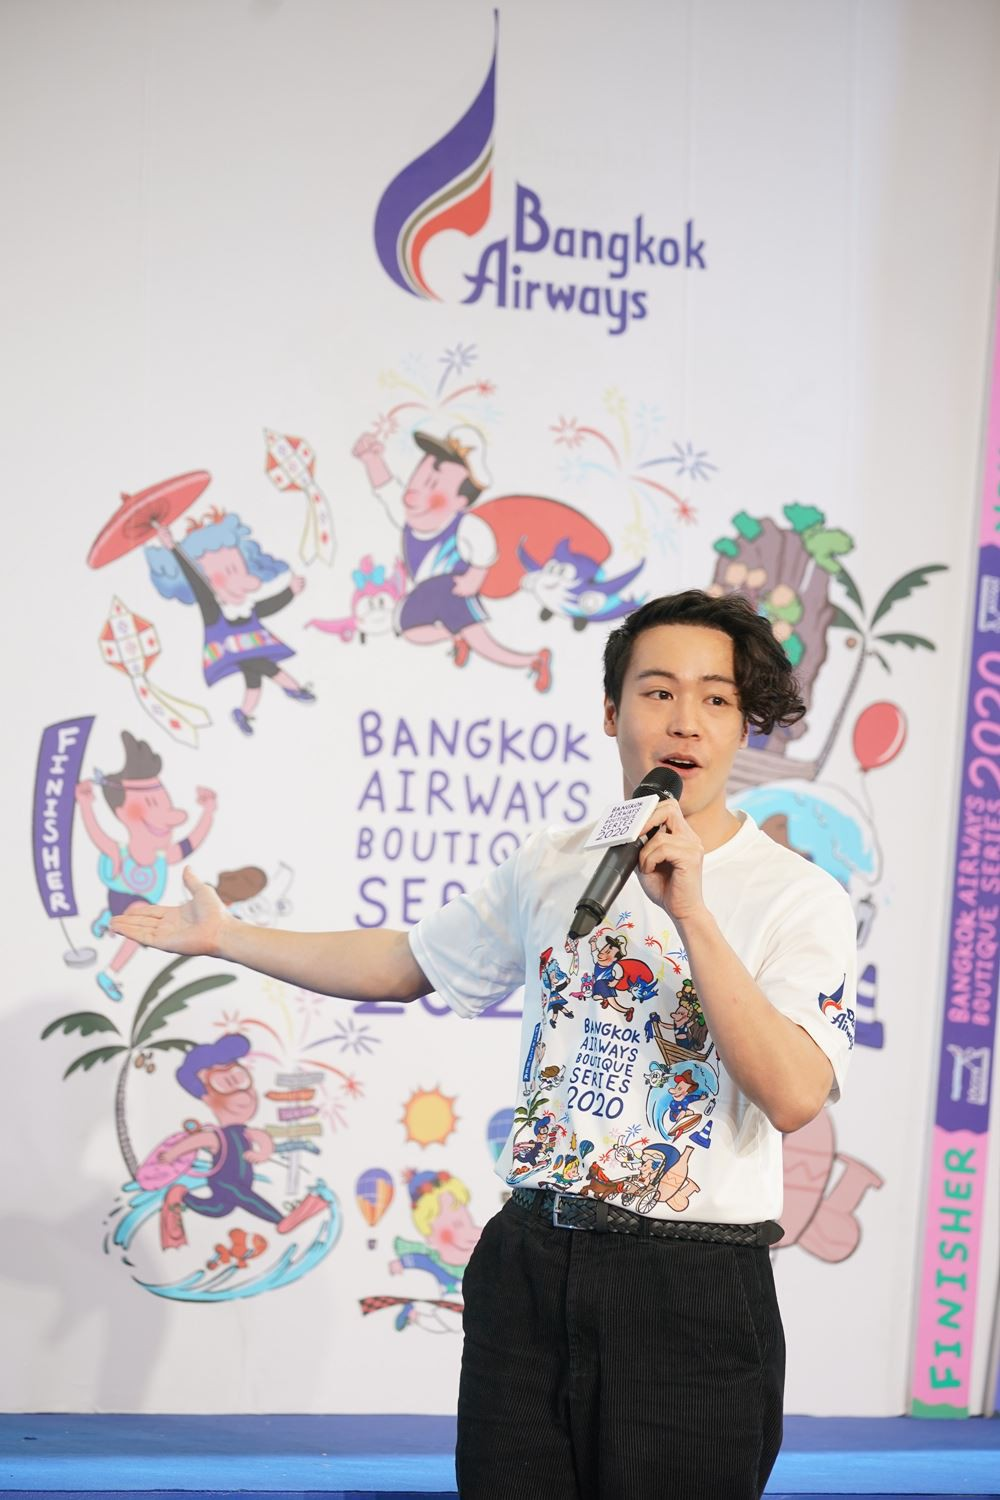 """8 Bangkok Airways launches """"Bangkok Airways Boutique Series 2020"""" The 6 running races at 6 boutique"""